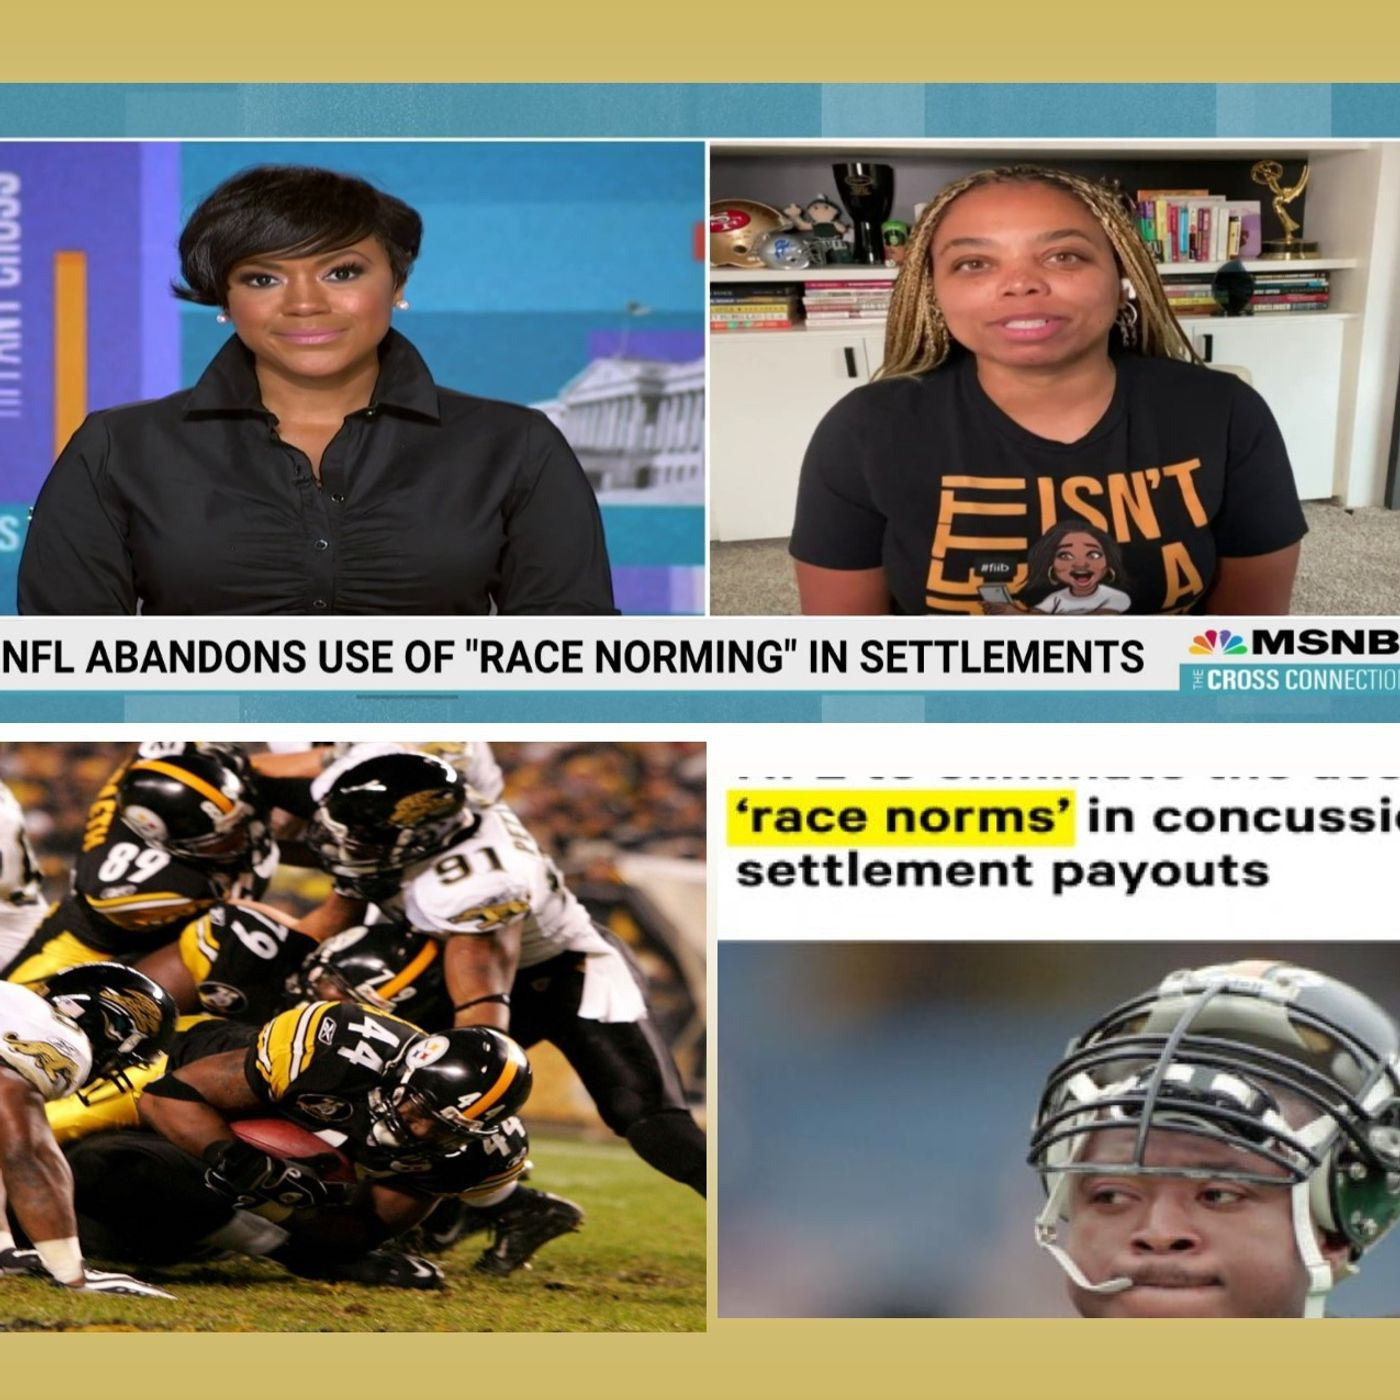 NFL Ends 'Race-Norming', Naomi Osaka Chooses Mental Health Over Tennis & True History & Class Analysis of Duke's Coach K